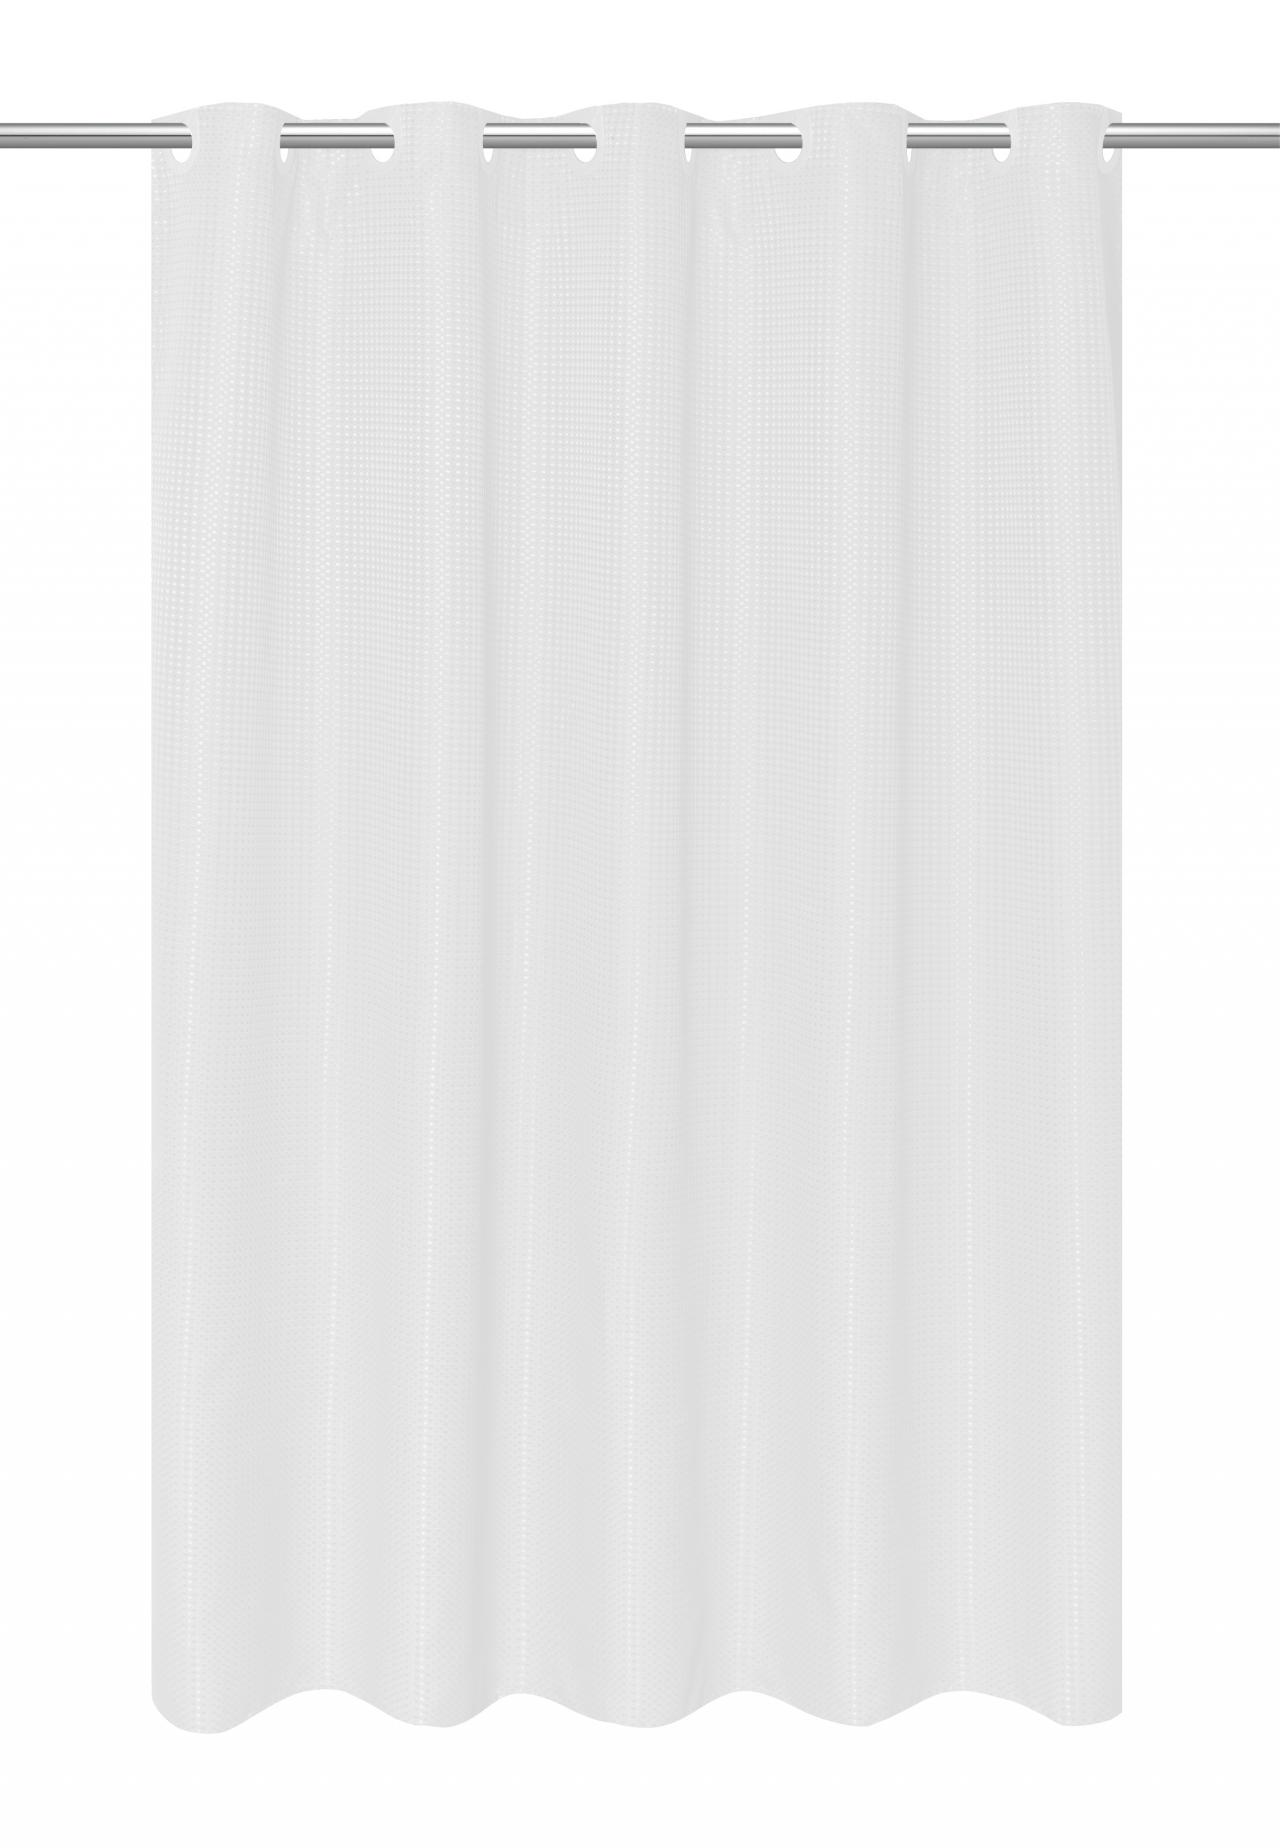 waffle shower prod wave weave qlt home spin essential hei fabric p white curtain curtains wid